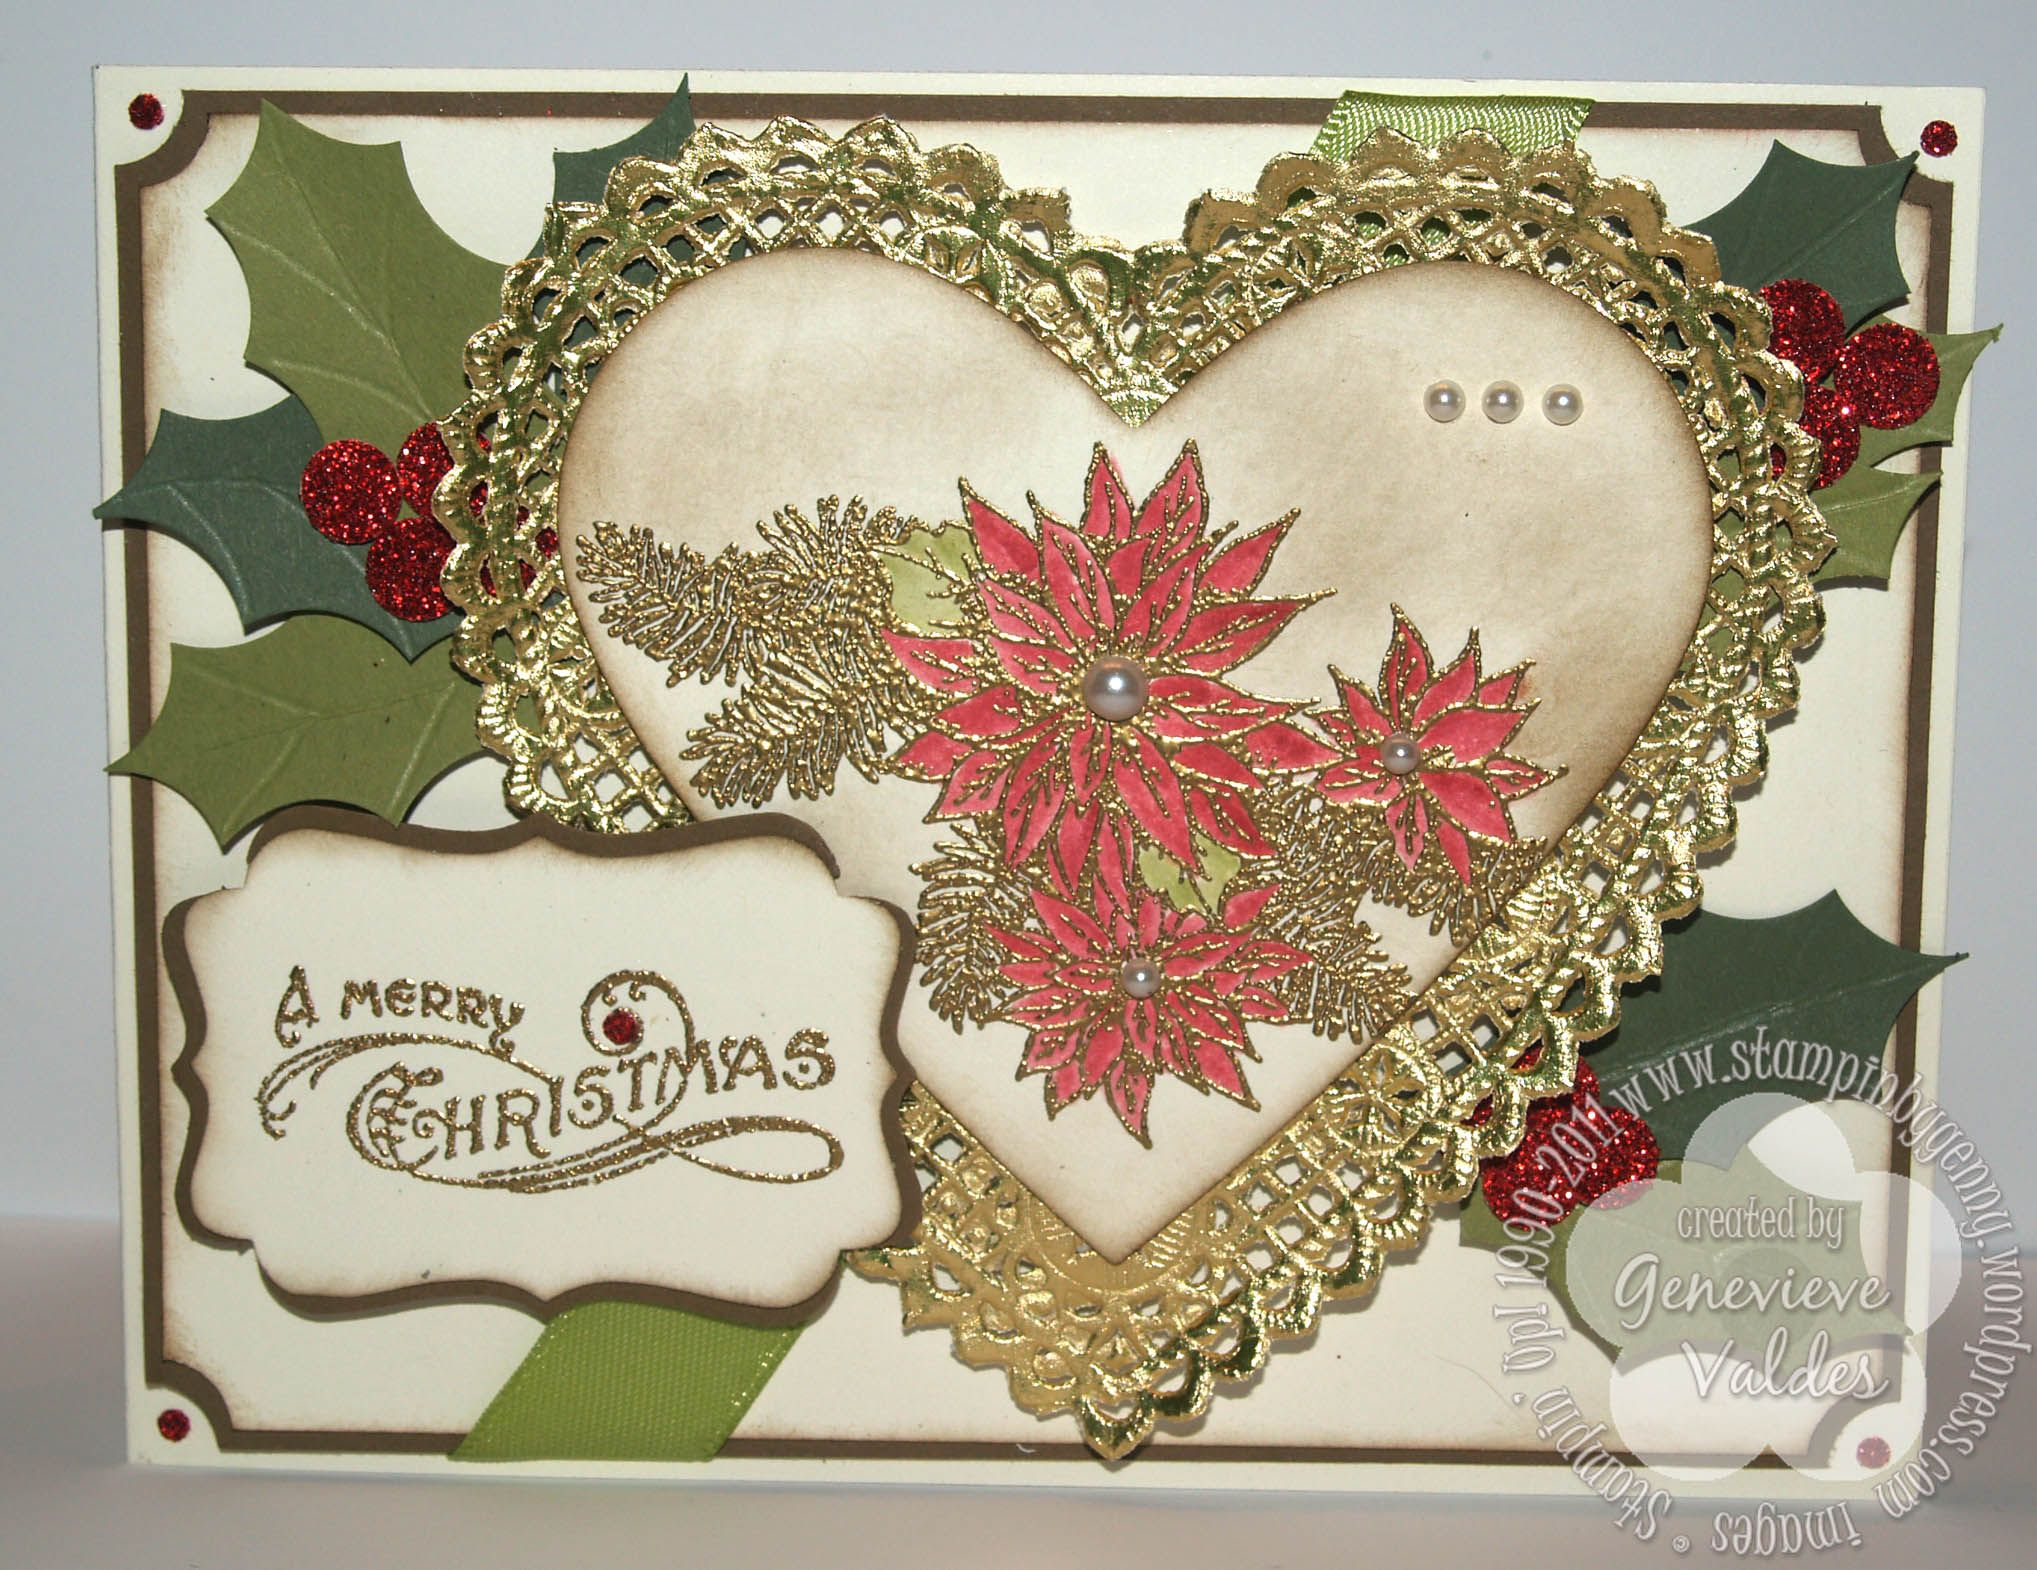 Pinterest greeting cards homemade antique christmas cards pinterest greeting cards homemade antique christmas cards kristyandbryce Images